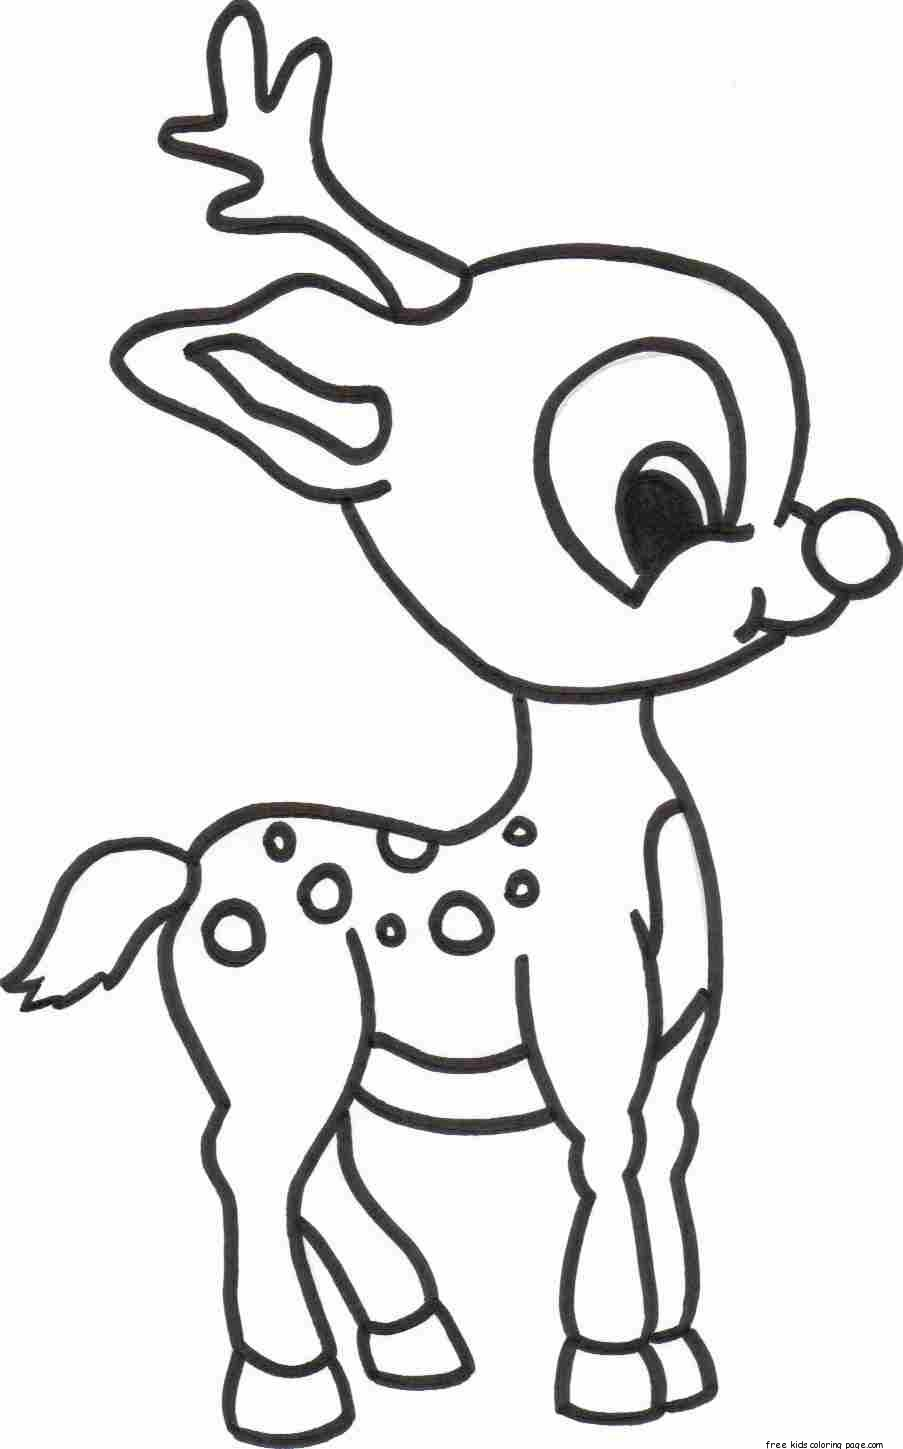 free pictures to print bunny coloring pages best coloring pages for kids to print free pictures